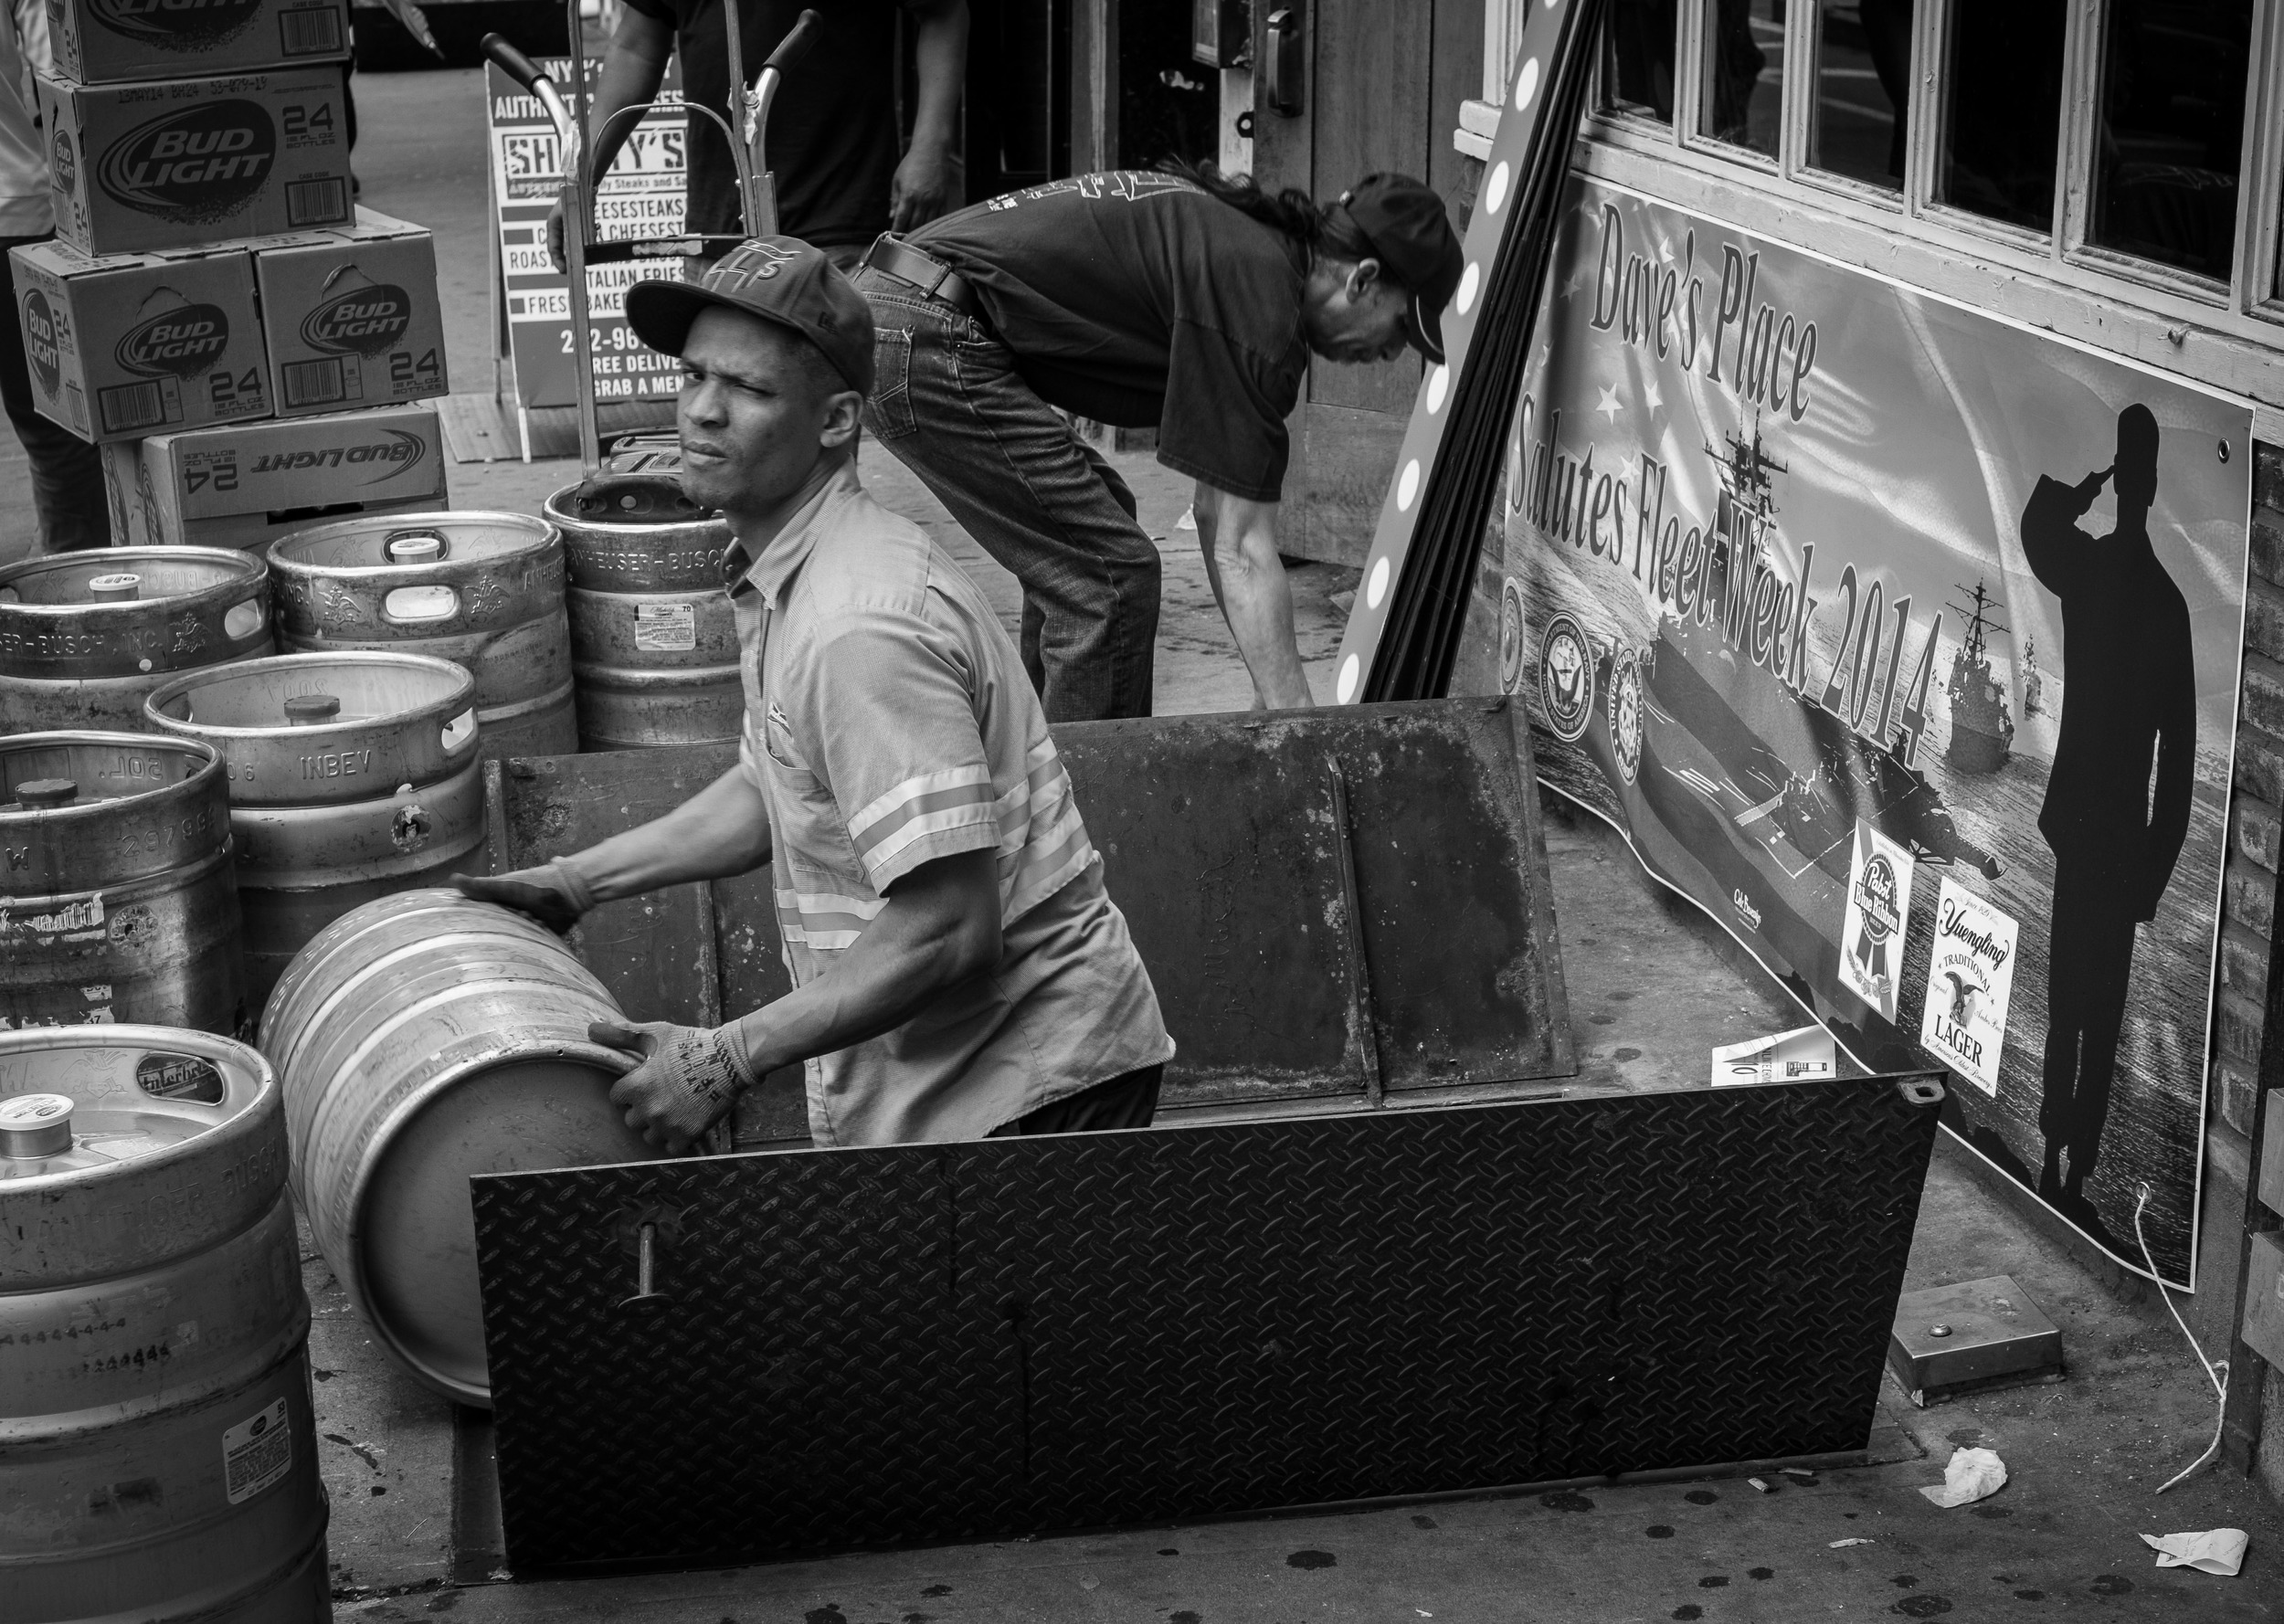 In street photography, you have to always be ready to shoot. In this case I noticed the Fleet Week sign and the man loading kegs as I walked by. I quickly turned and got off about a dozen frames before I moved on. 1/125, f5.6 at ISO 500.